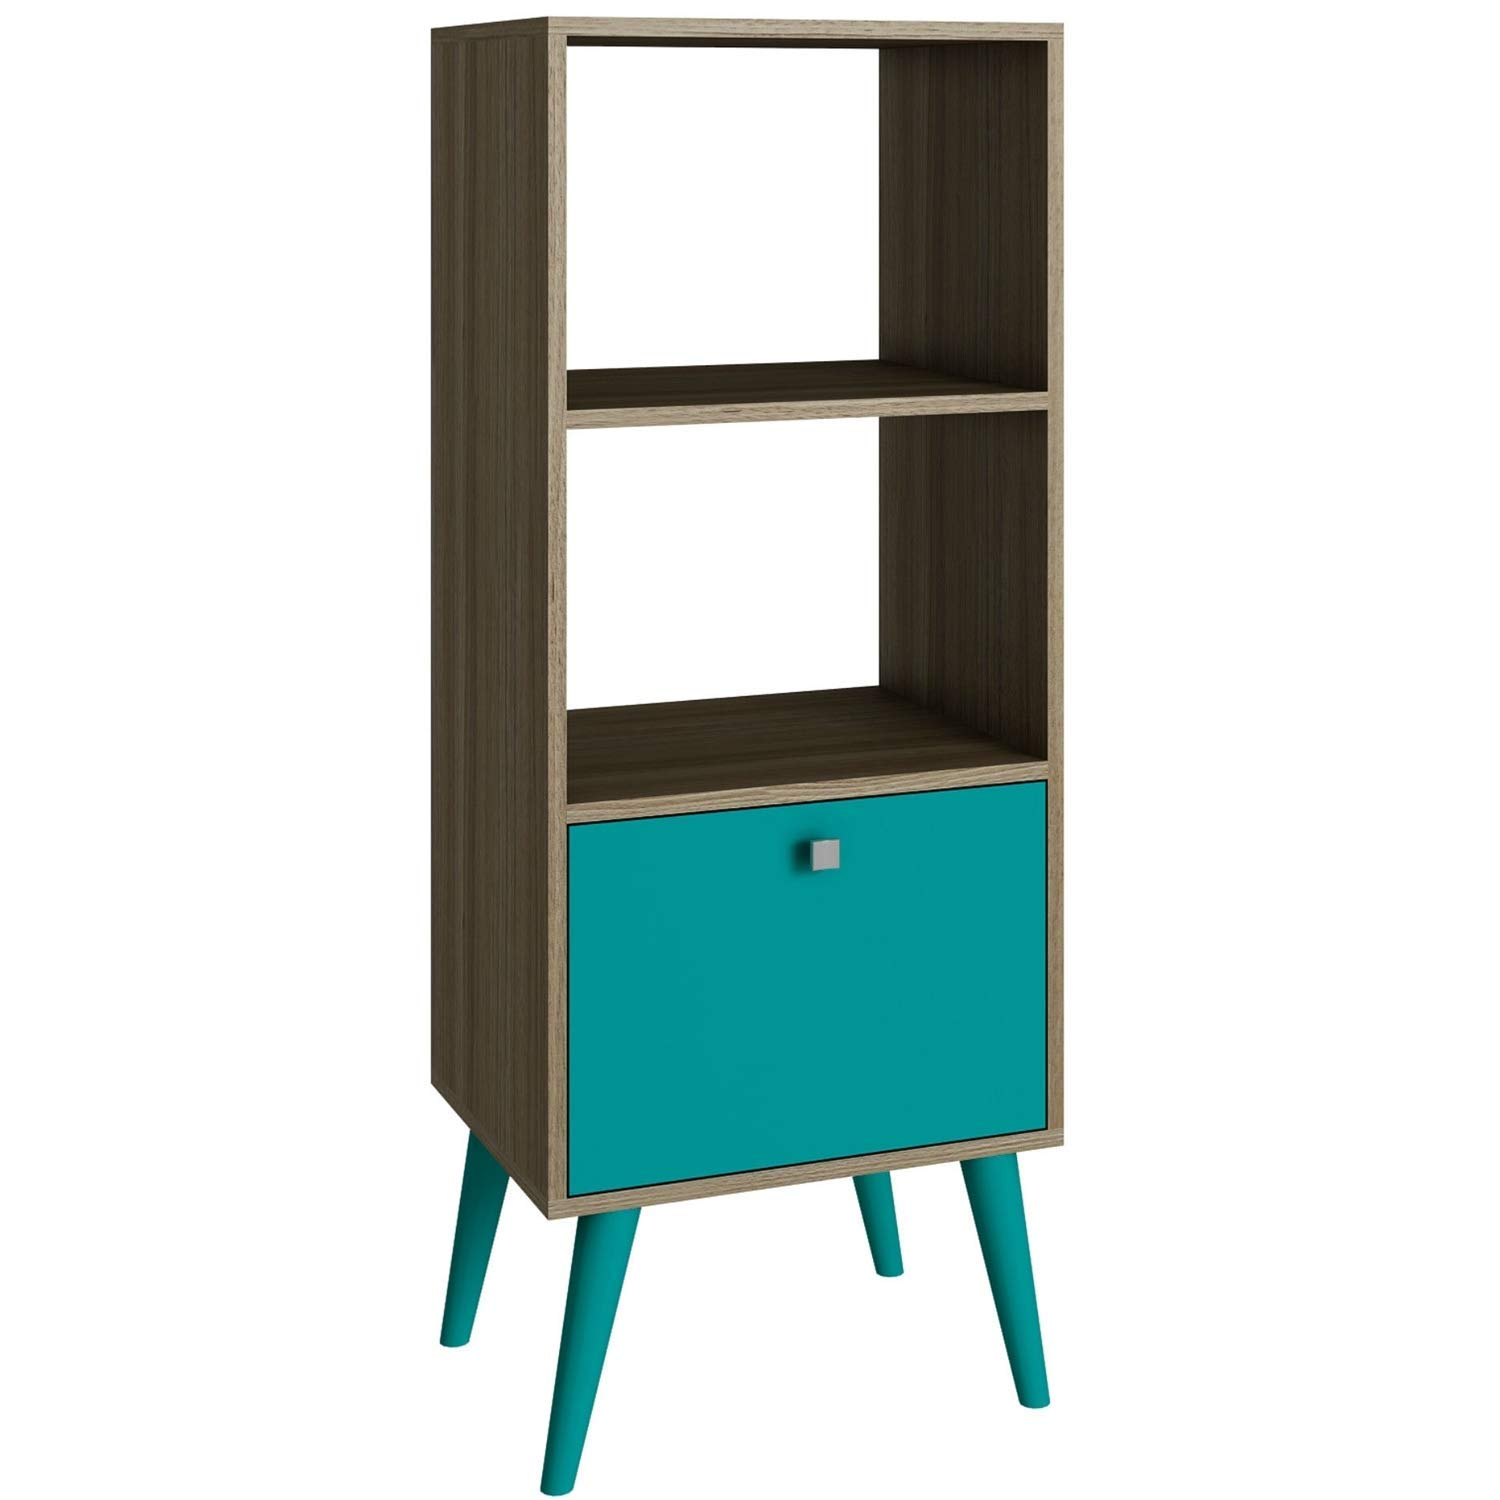 Trustpurchase Modern Bookcase with Mid-Century Style Wood Legs in Oak Aqua Finish, Stylish Sophistication Adds Distinctive Style to The Den, Then Round it Out w/Your Favorite Novels & Framed Photos